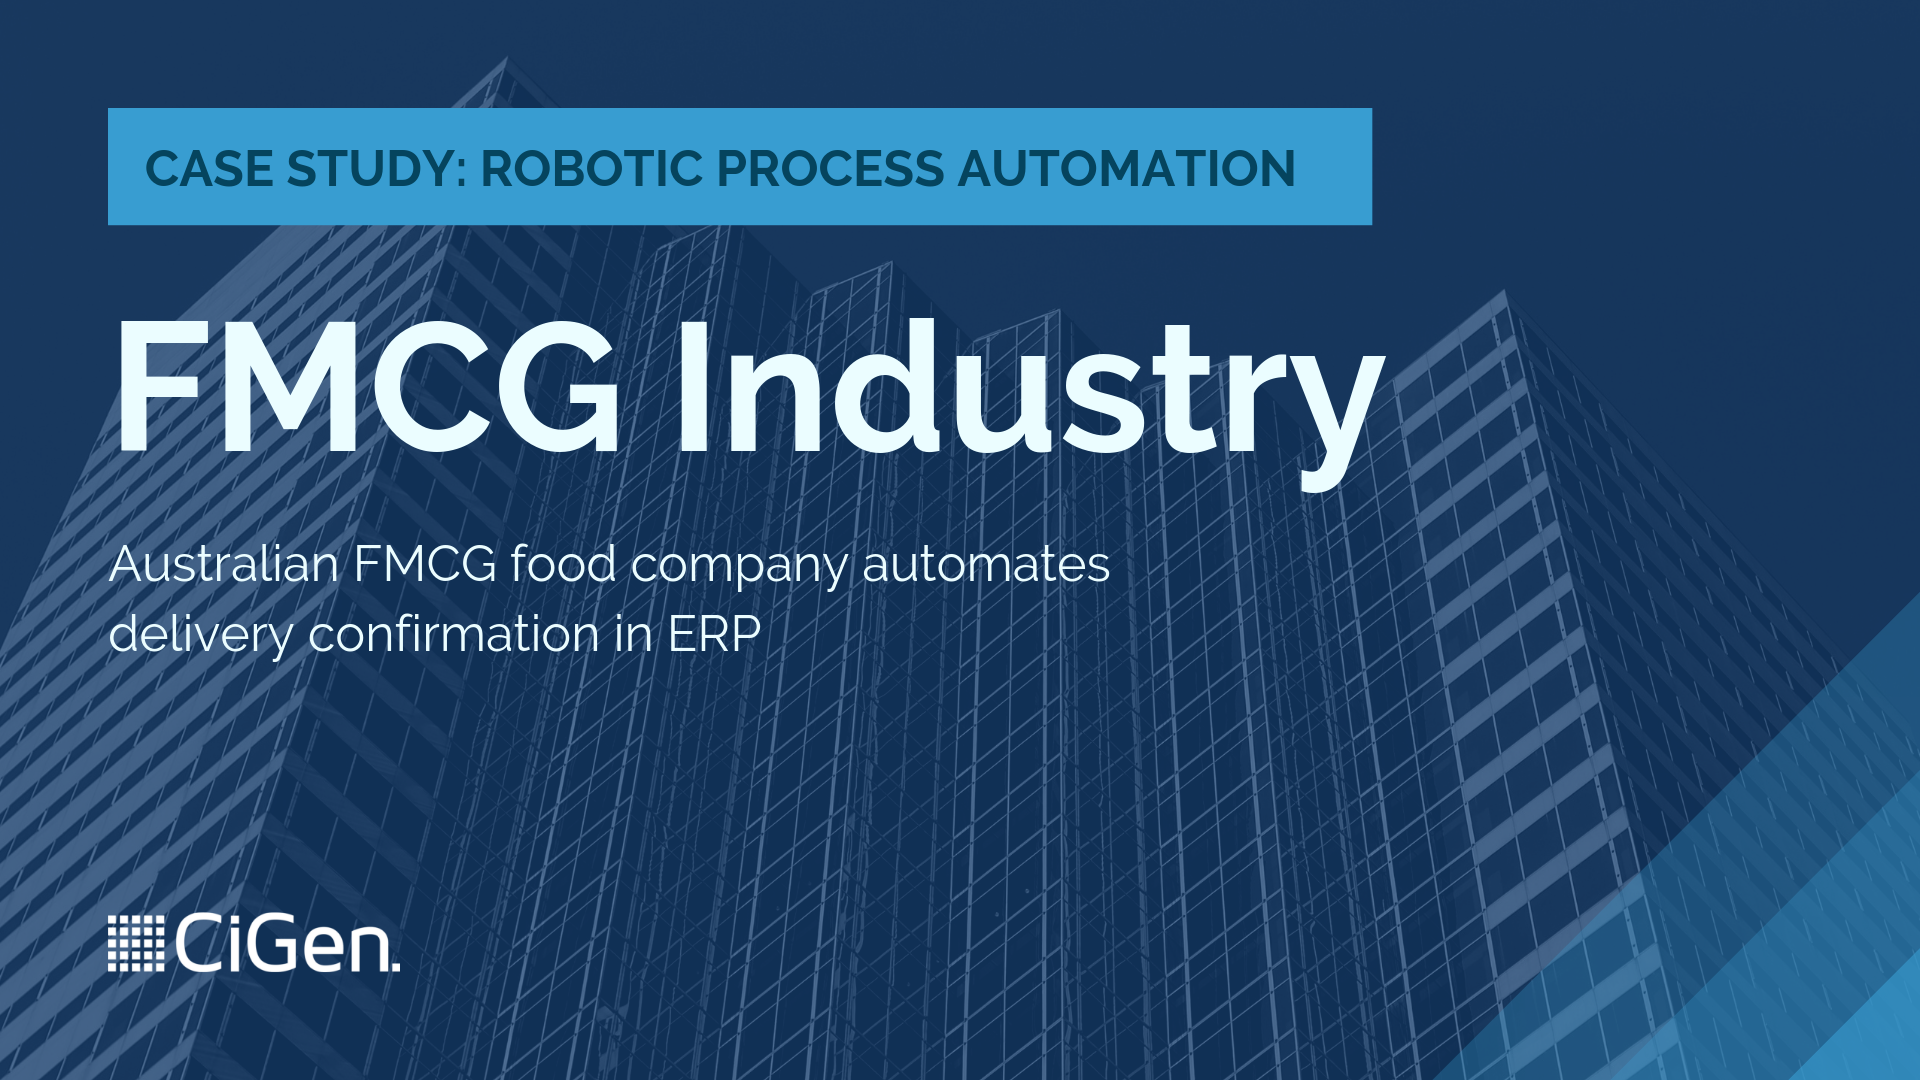 CiGen-robotic-process-automation-RPA-Australia-case-study-FMCG-food-company-automates-delivery-confirmation-in-ERP-1.png